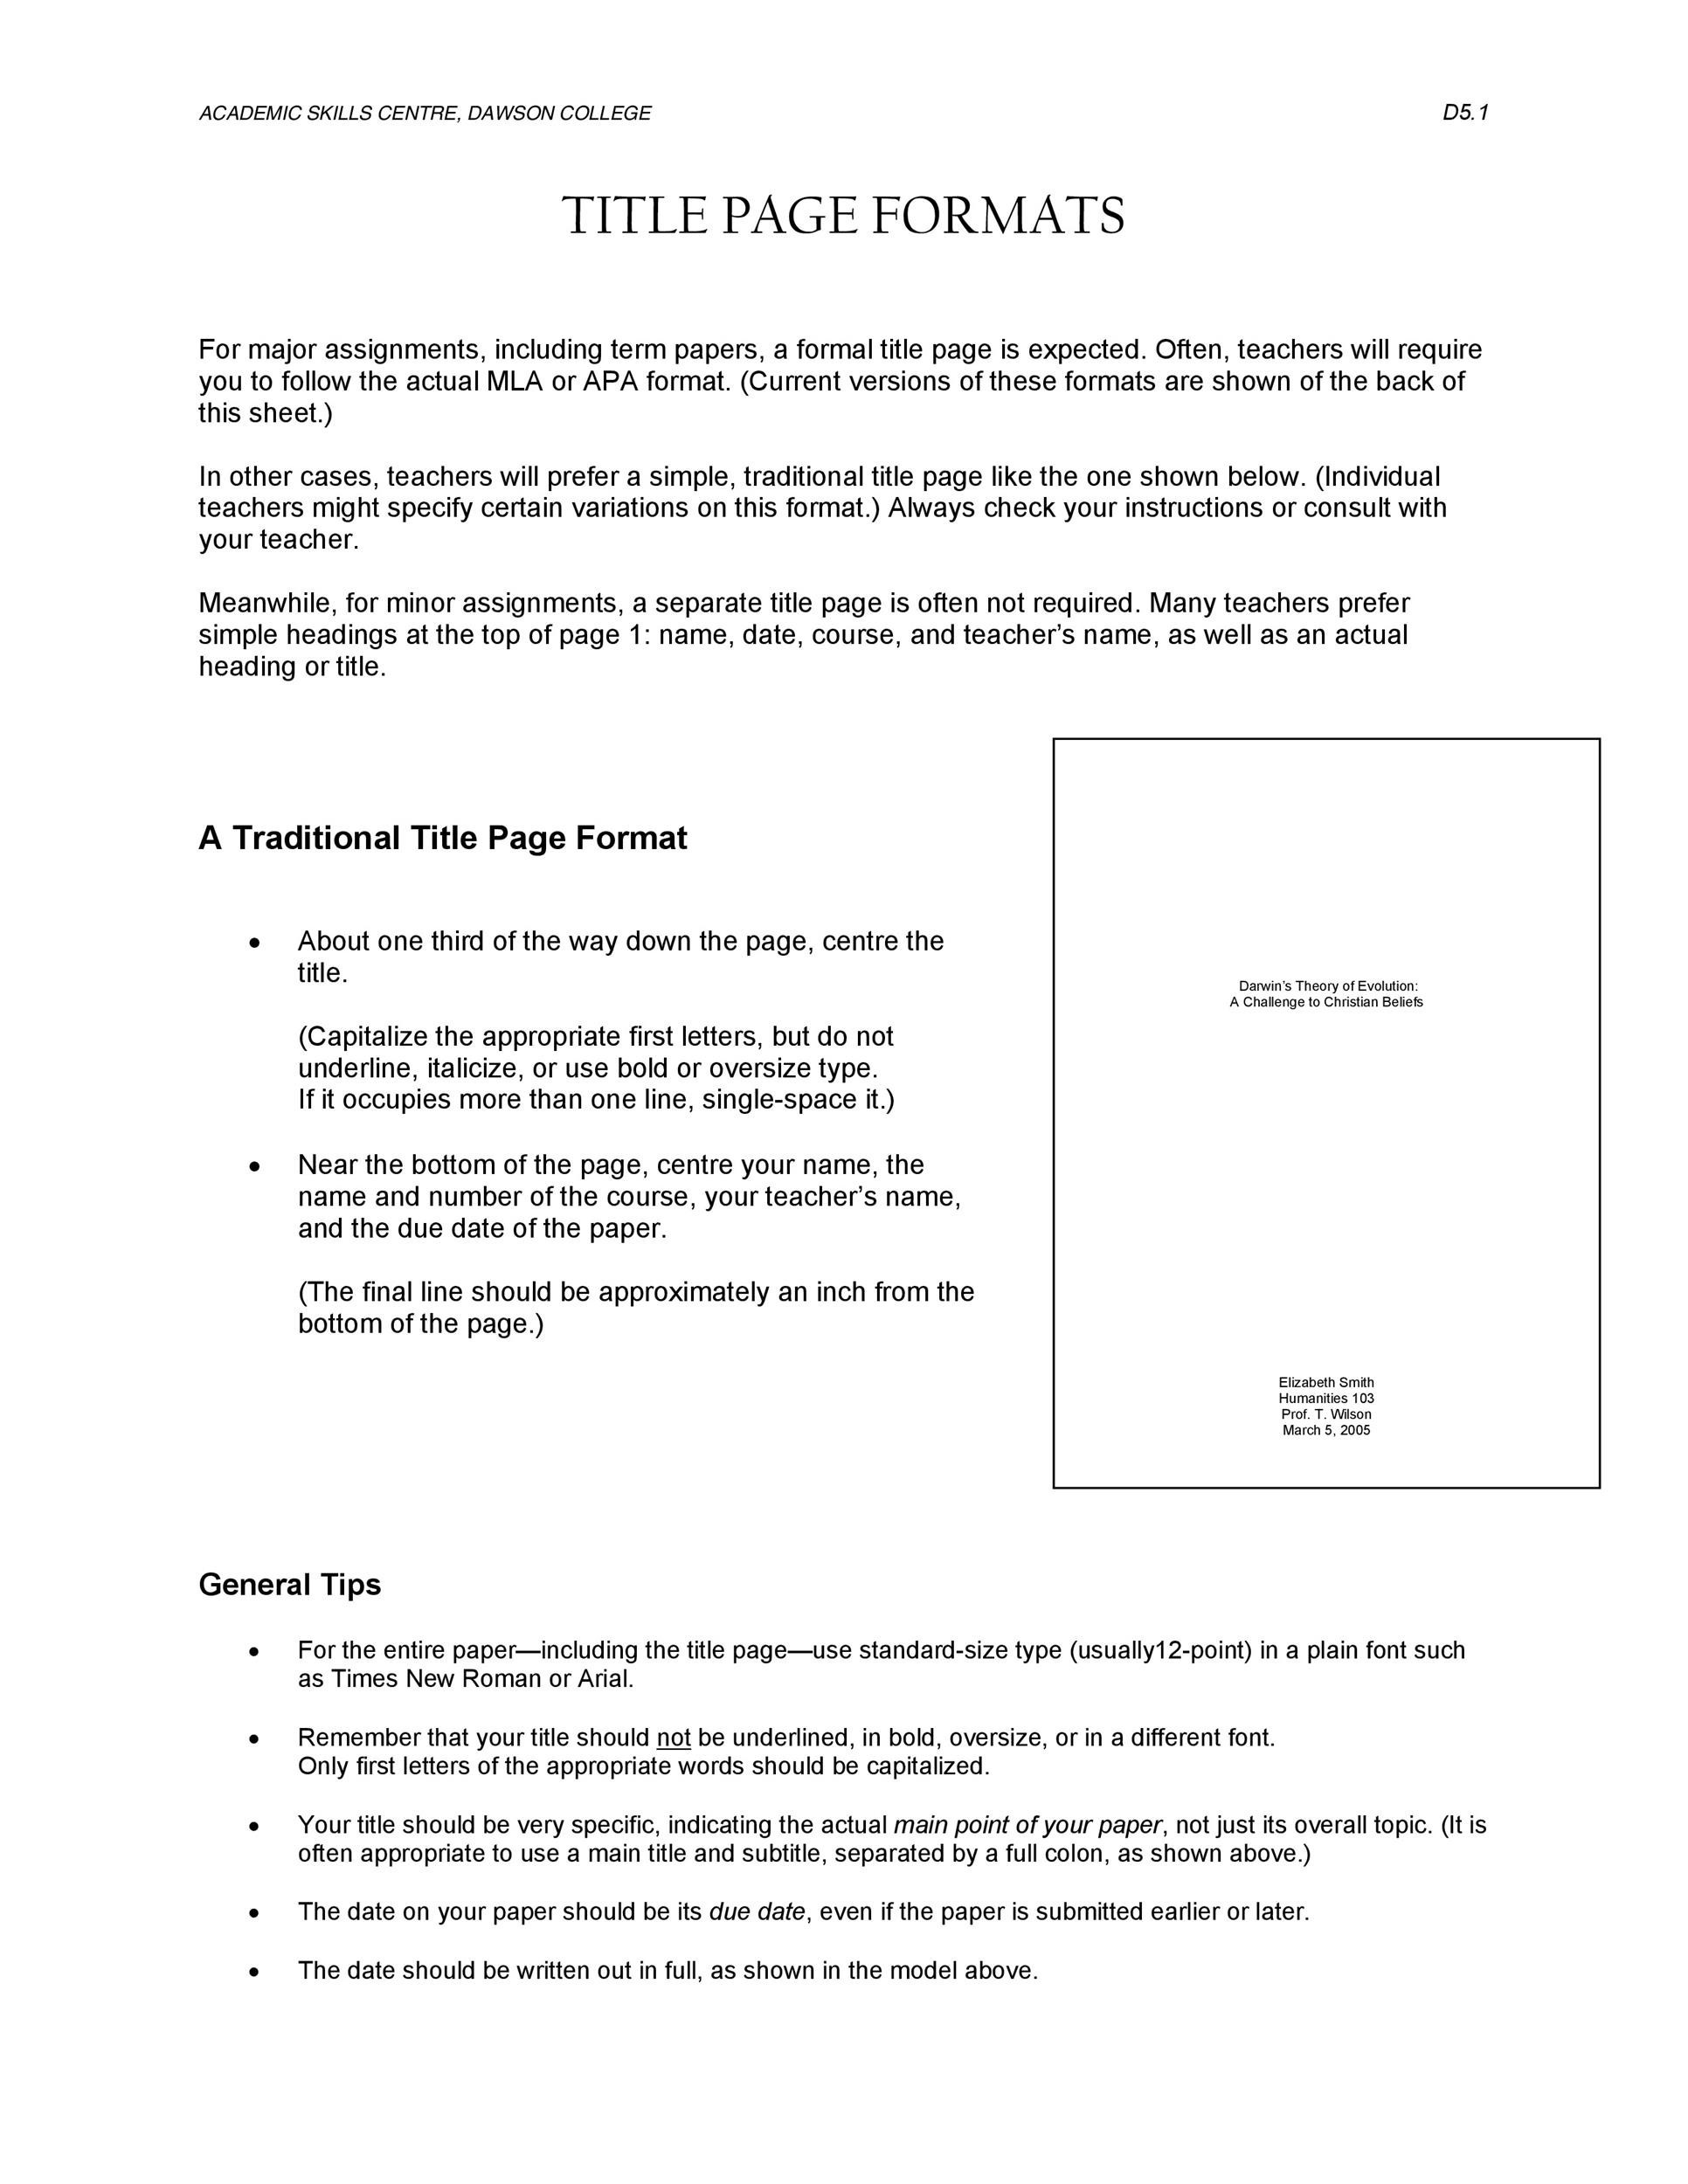 apa format style templates in word pdf template lab apa template 40